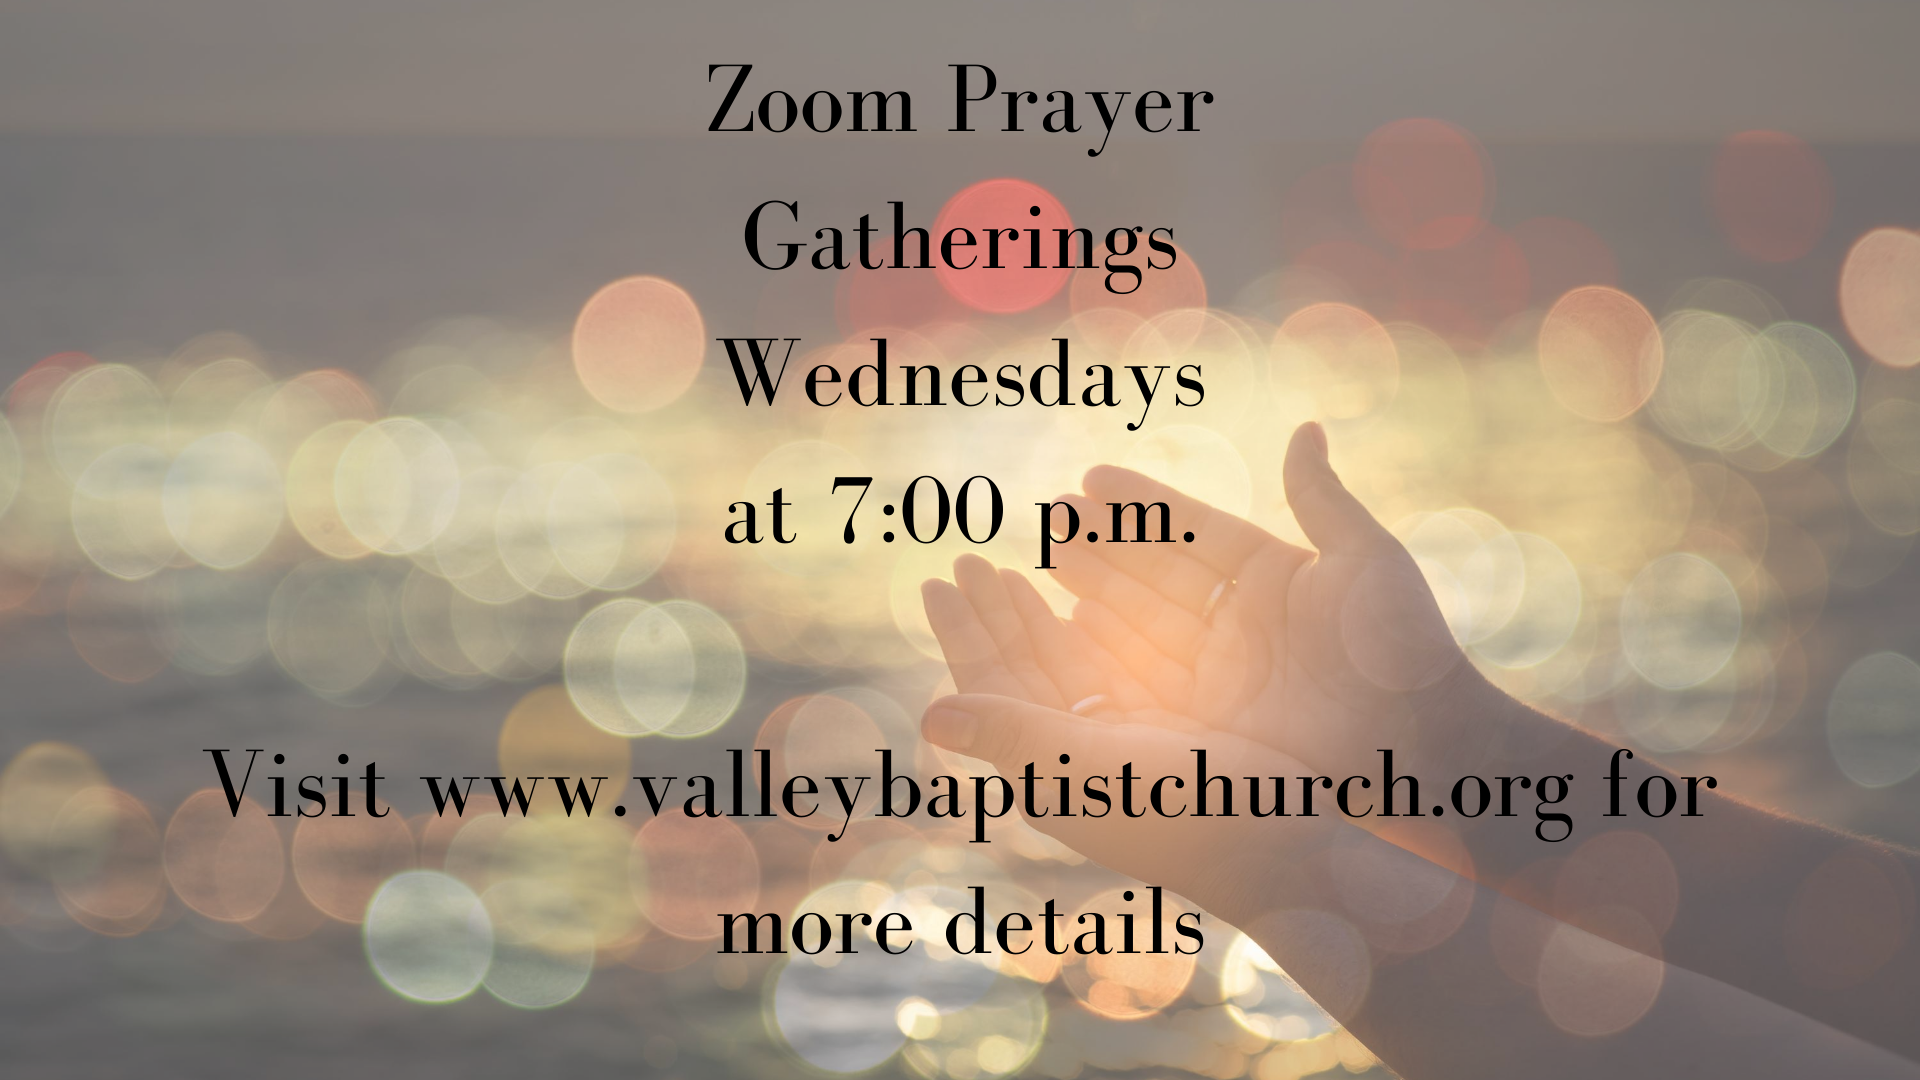 Prayer Gathering announcements image